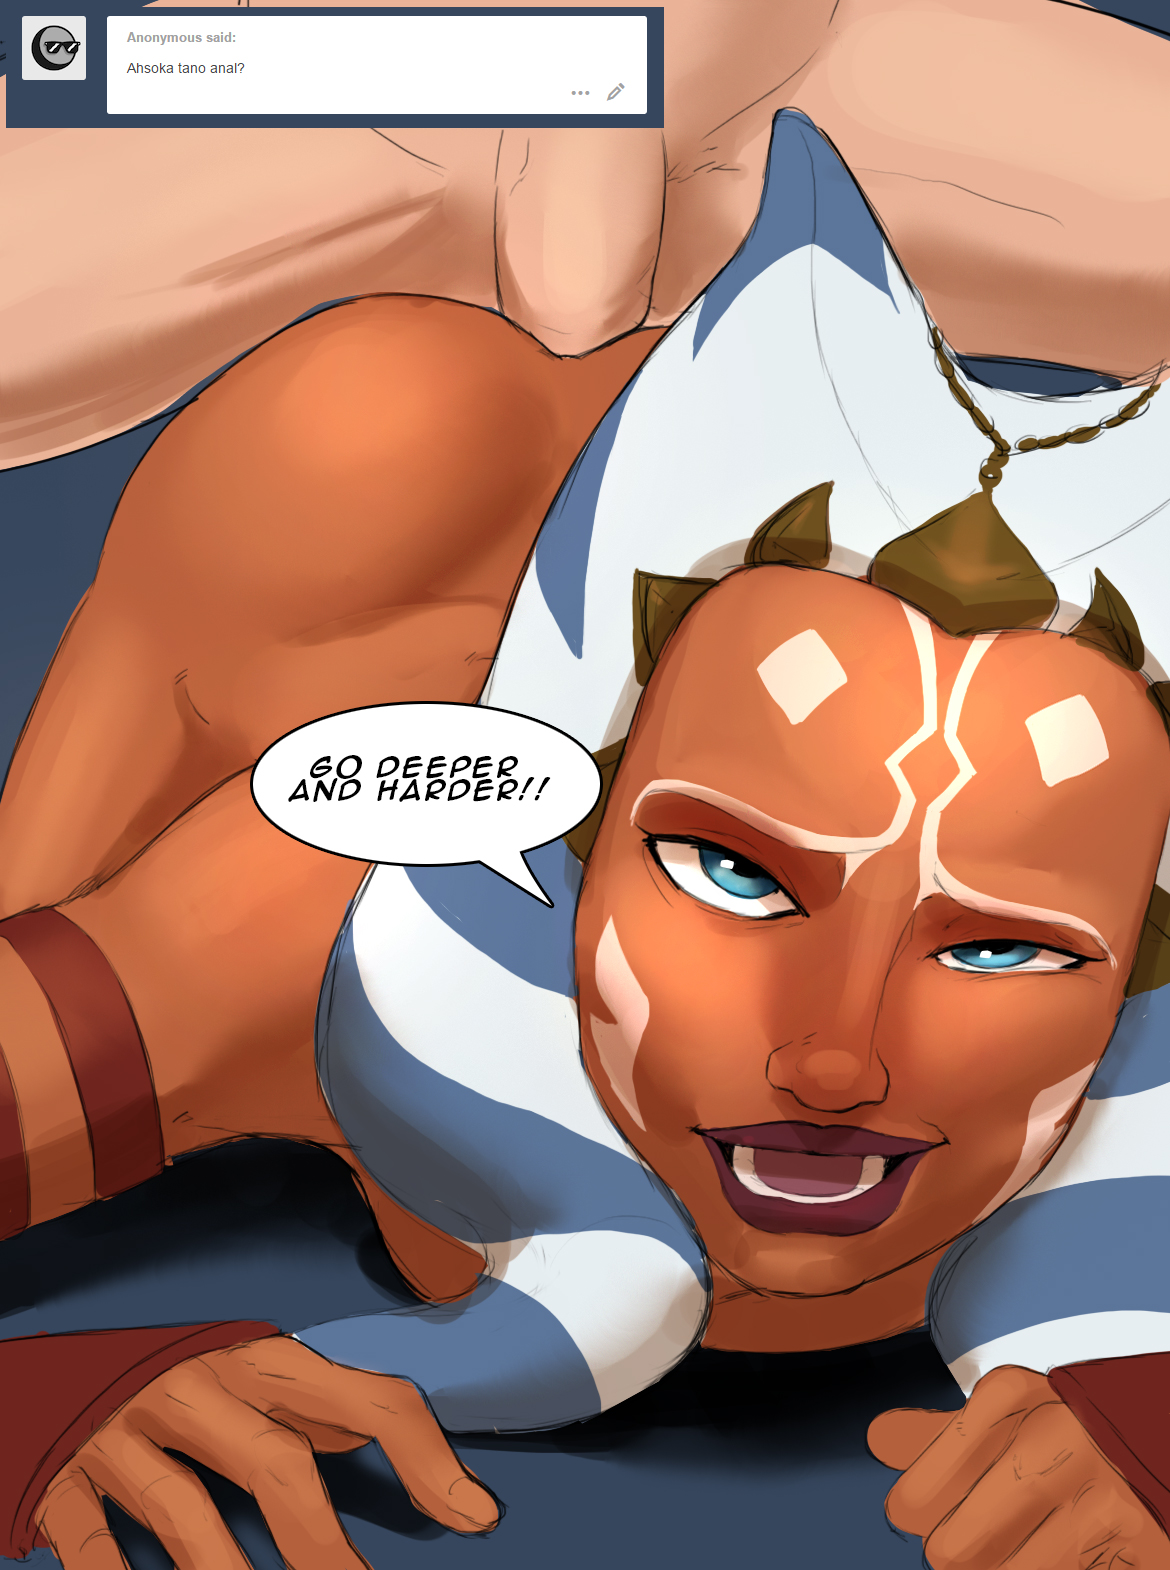 hentai star wars